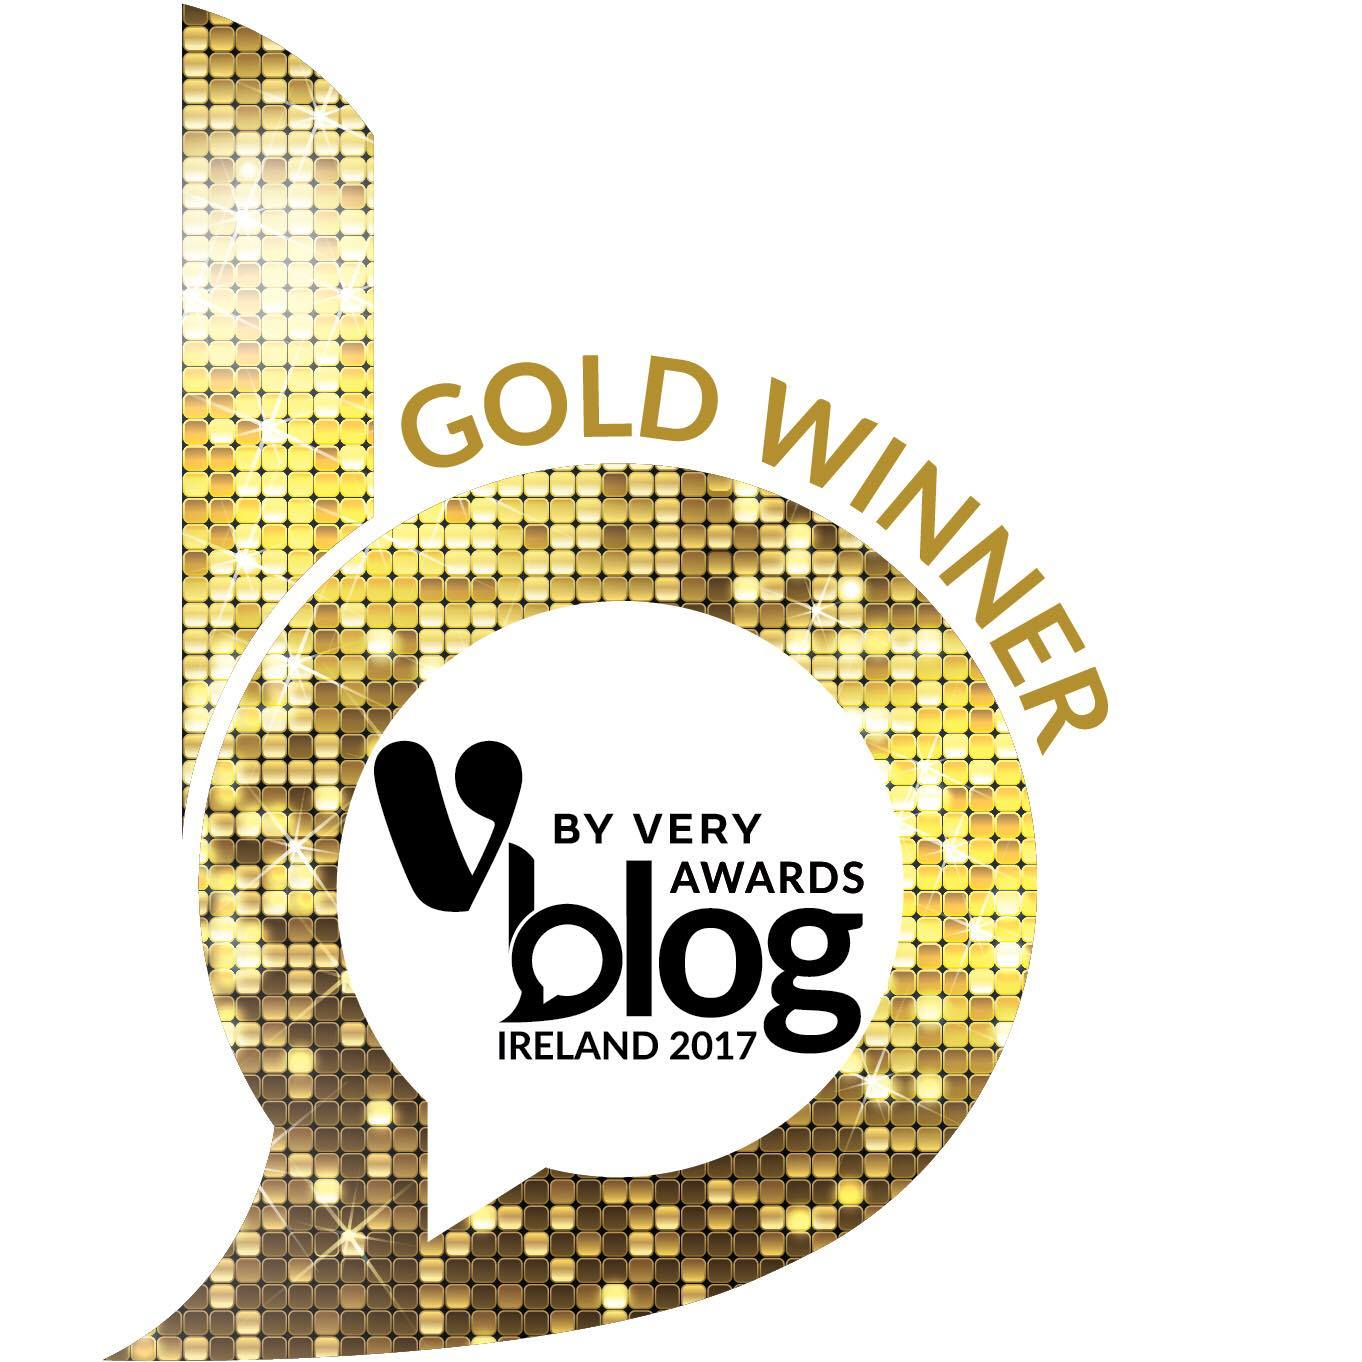 2017 Blog Awards Ireland Winner